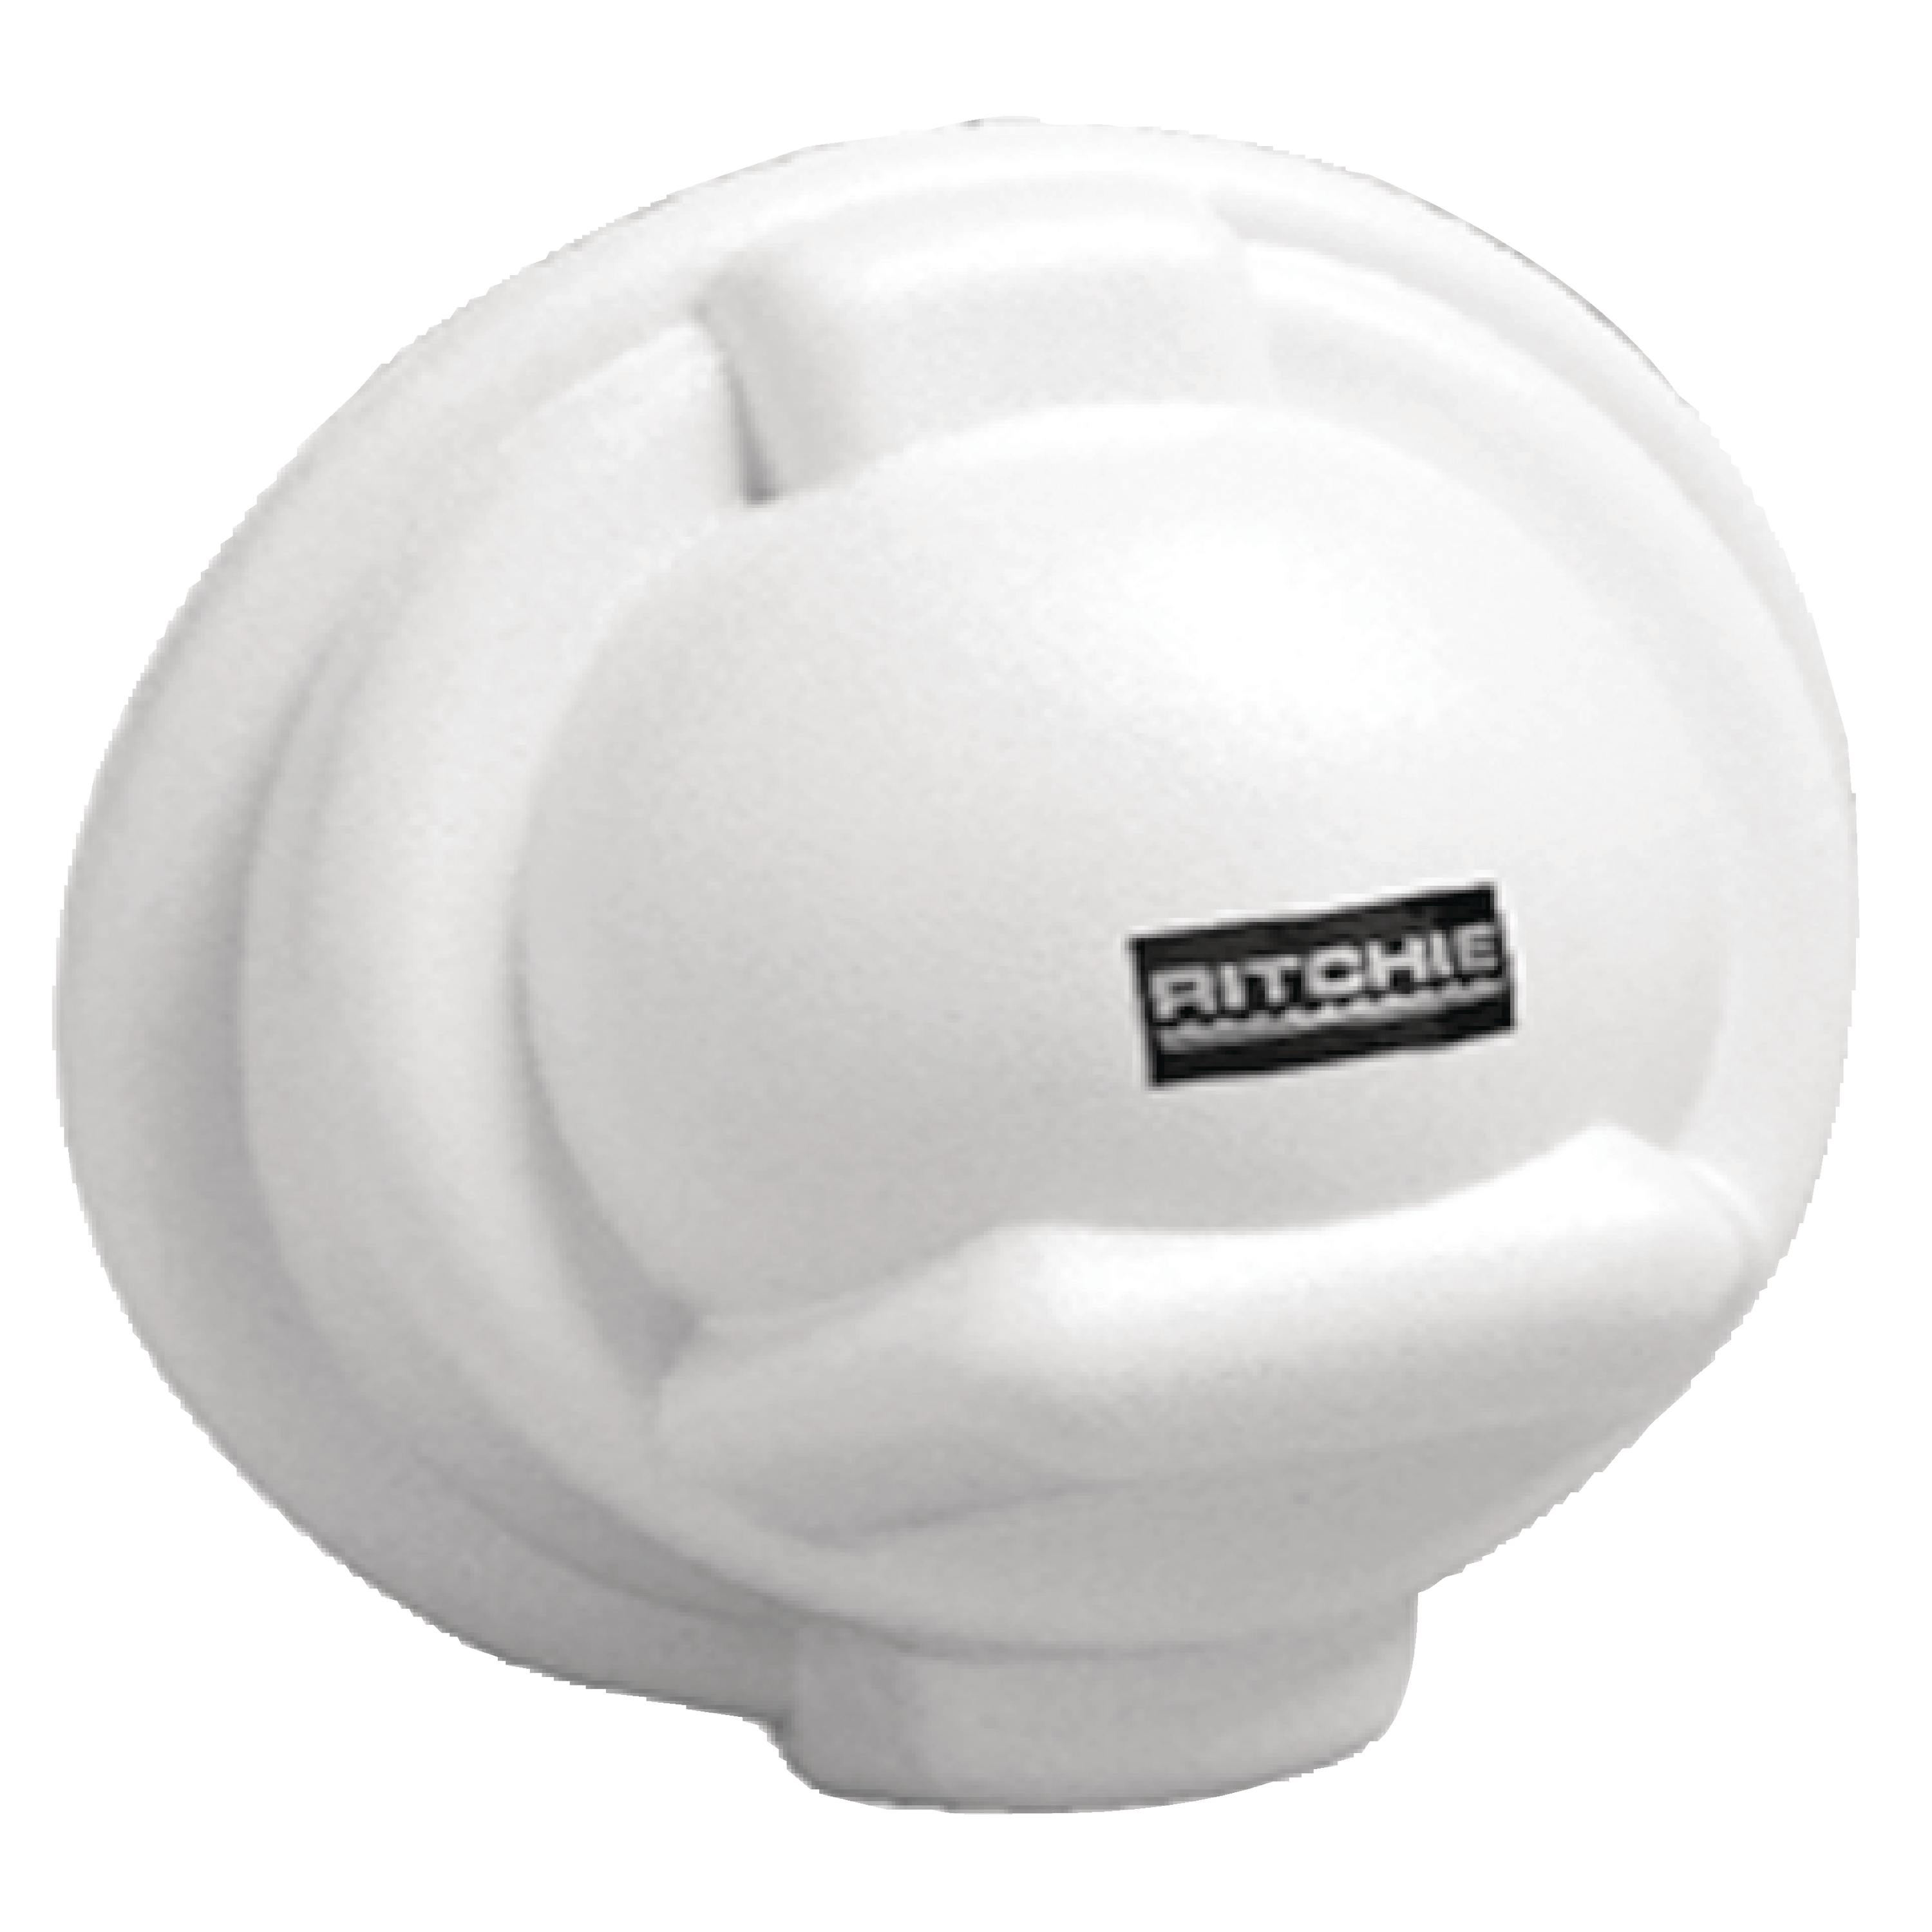 Click here to buy Ritchie BNC Boat Compass Cover for Bulkhead Models by E.S. Ritchie & Sons Inc..